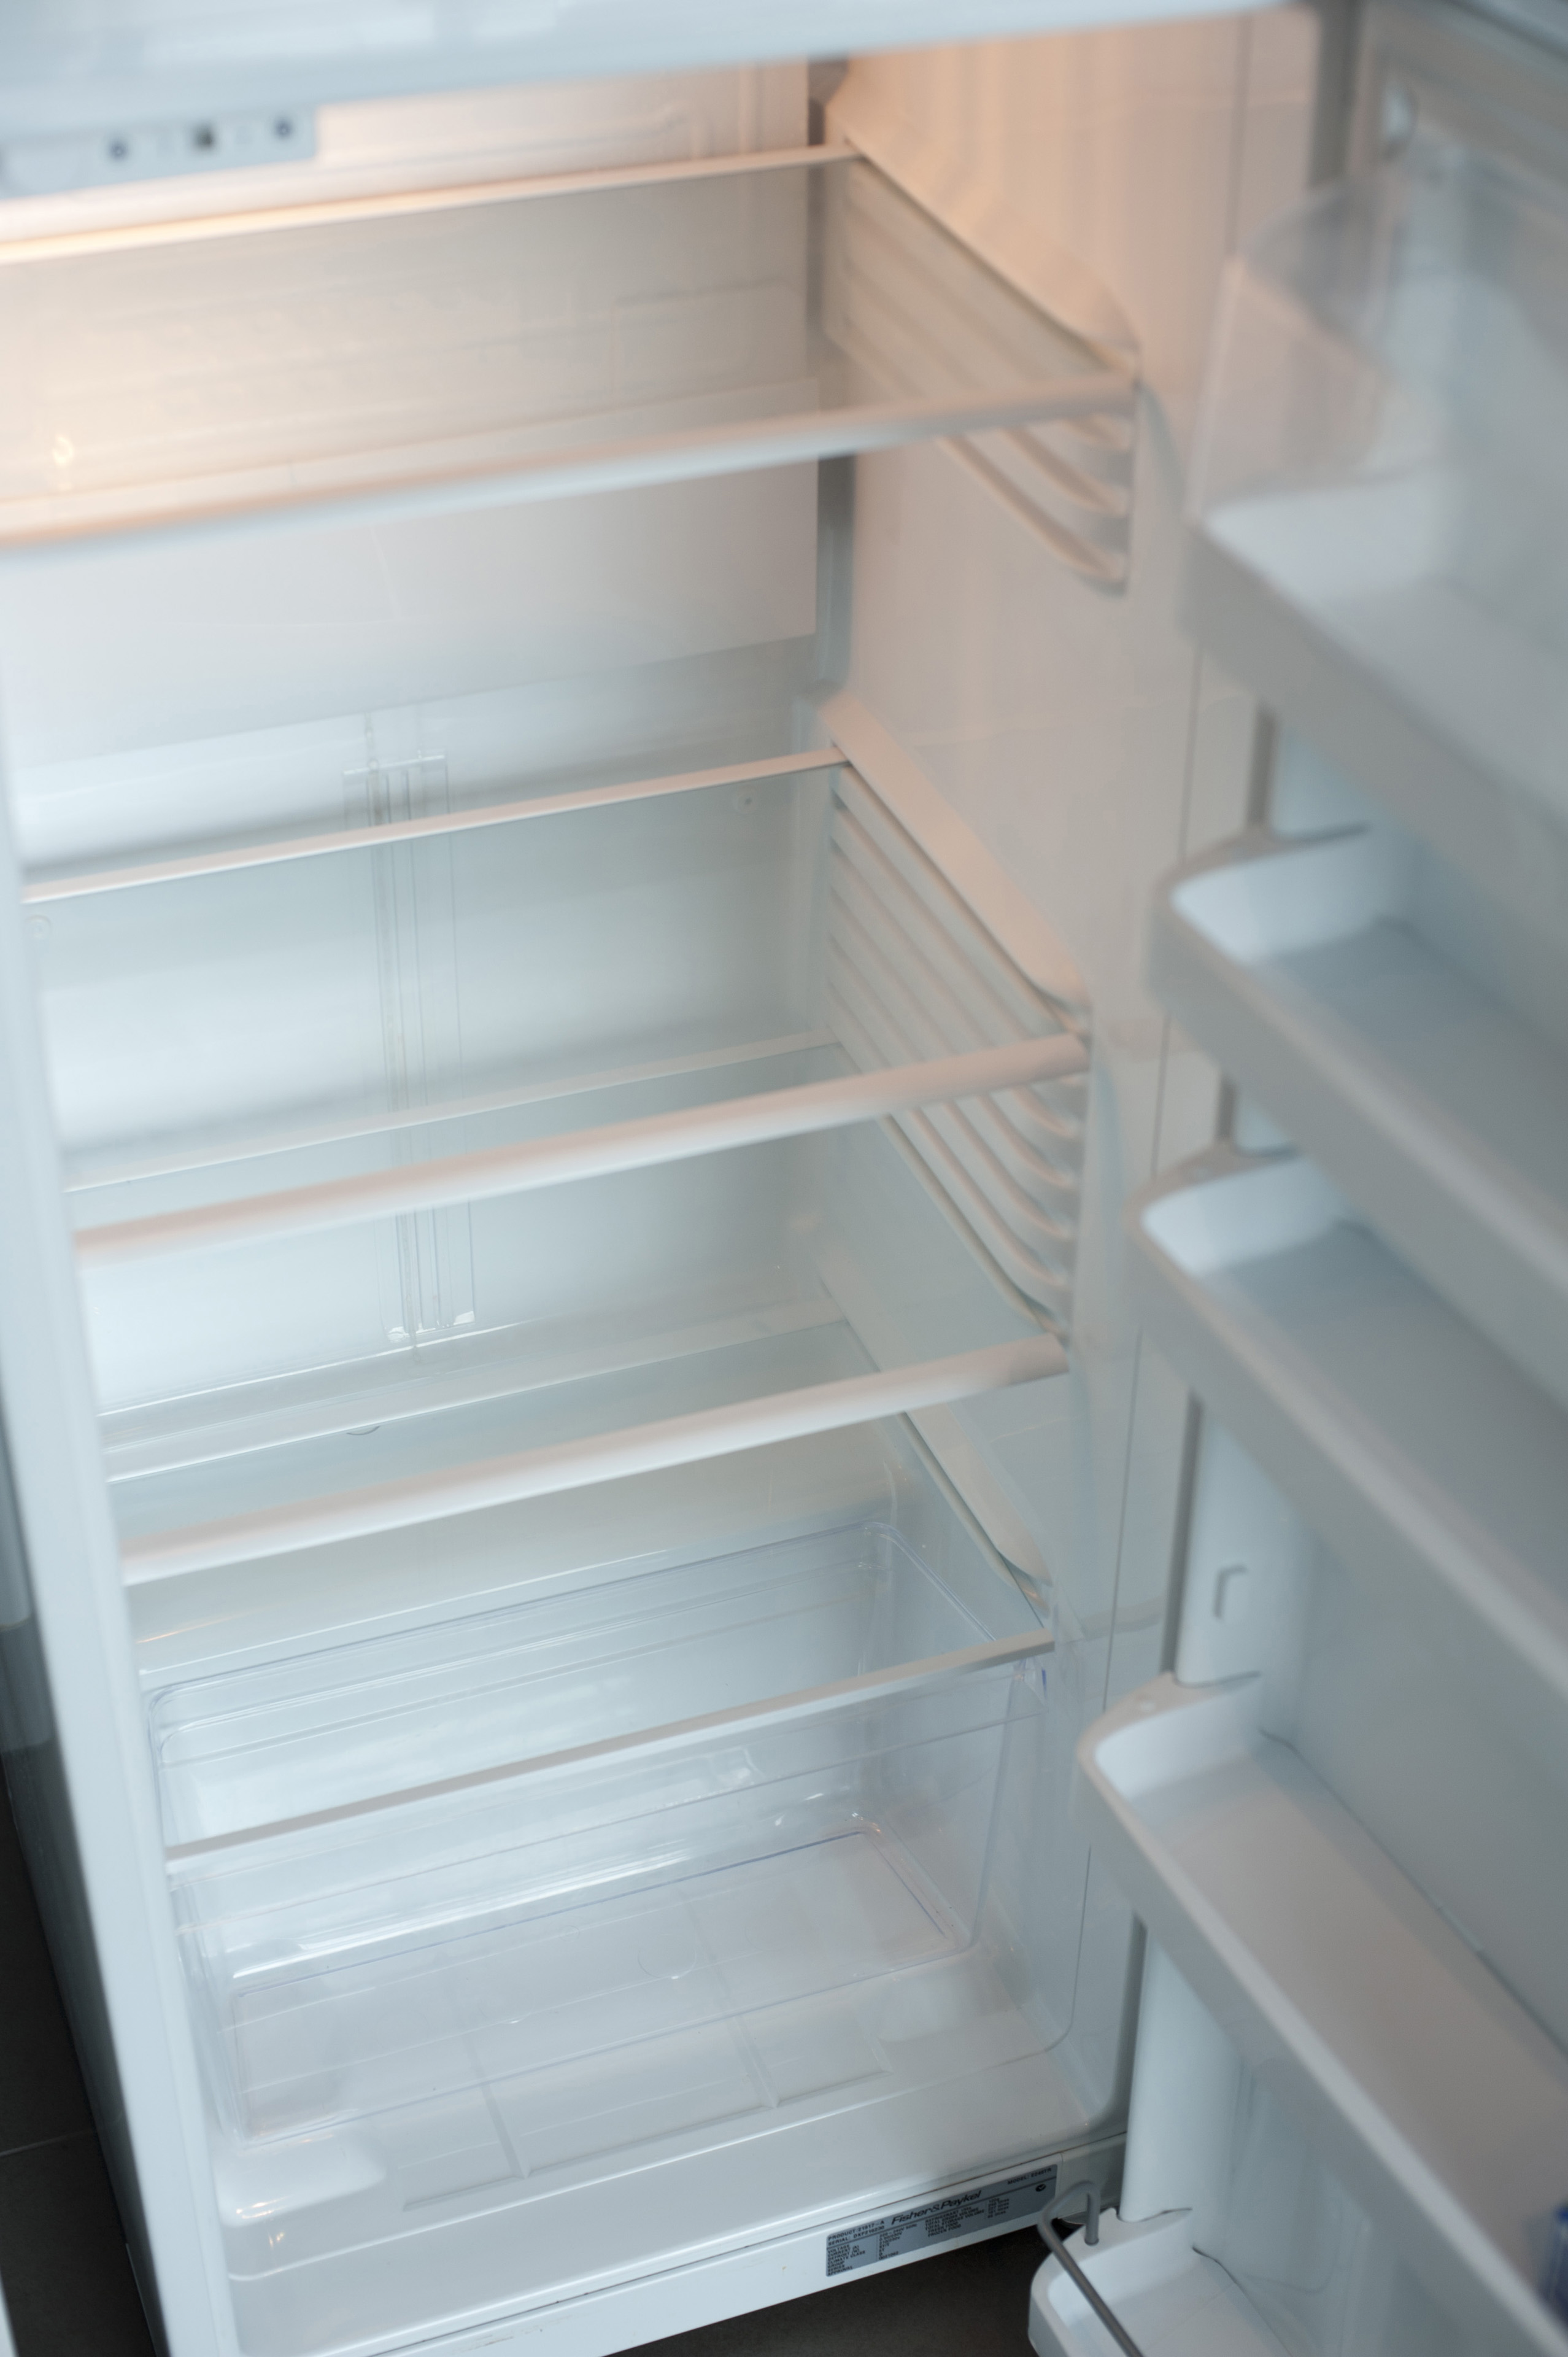 http://freebie.photography/home/empty_fridge.jpg